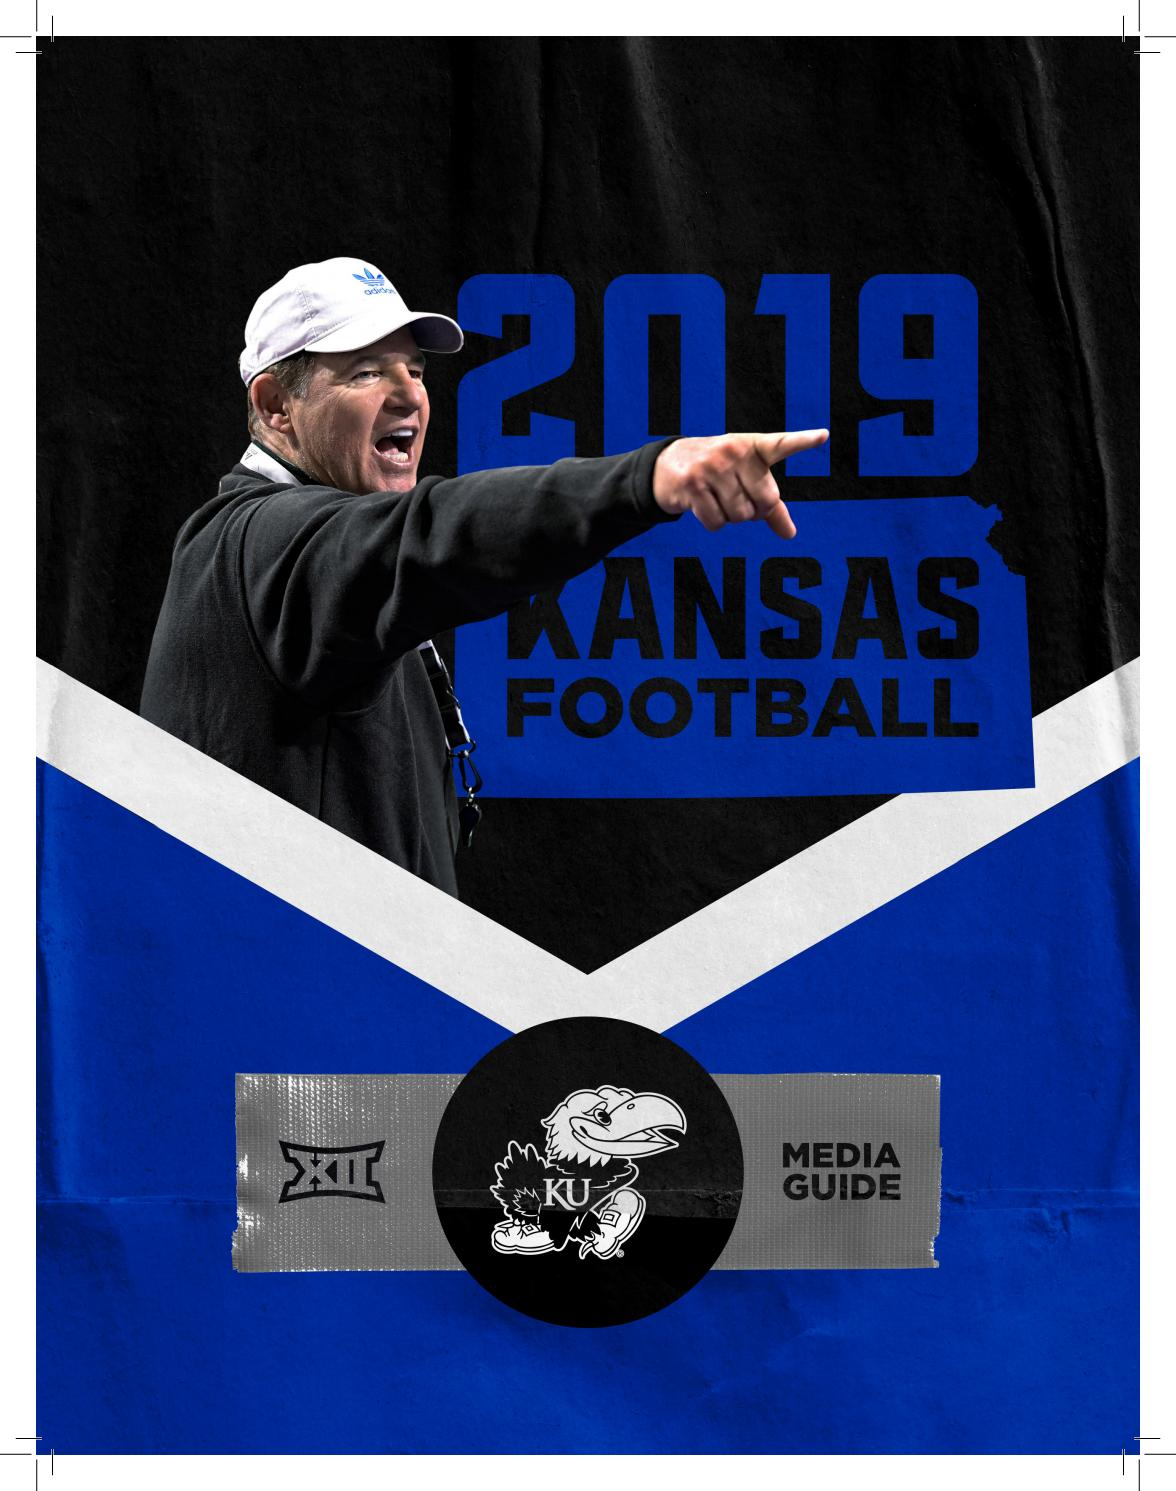 2019 Kansas Football Media Guide by Kansas Athletics - issuu